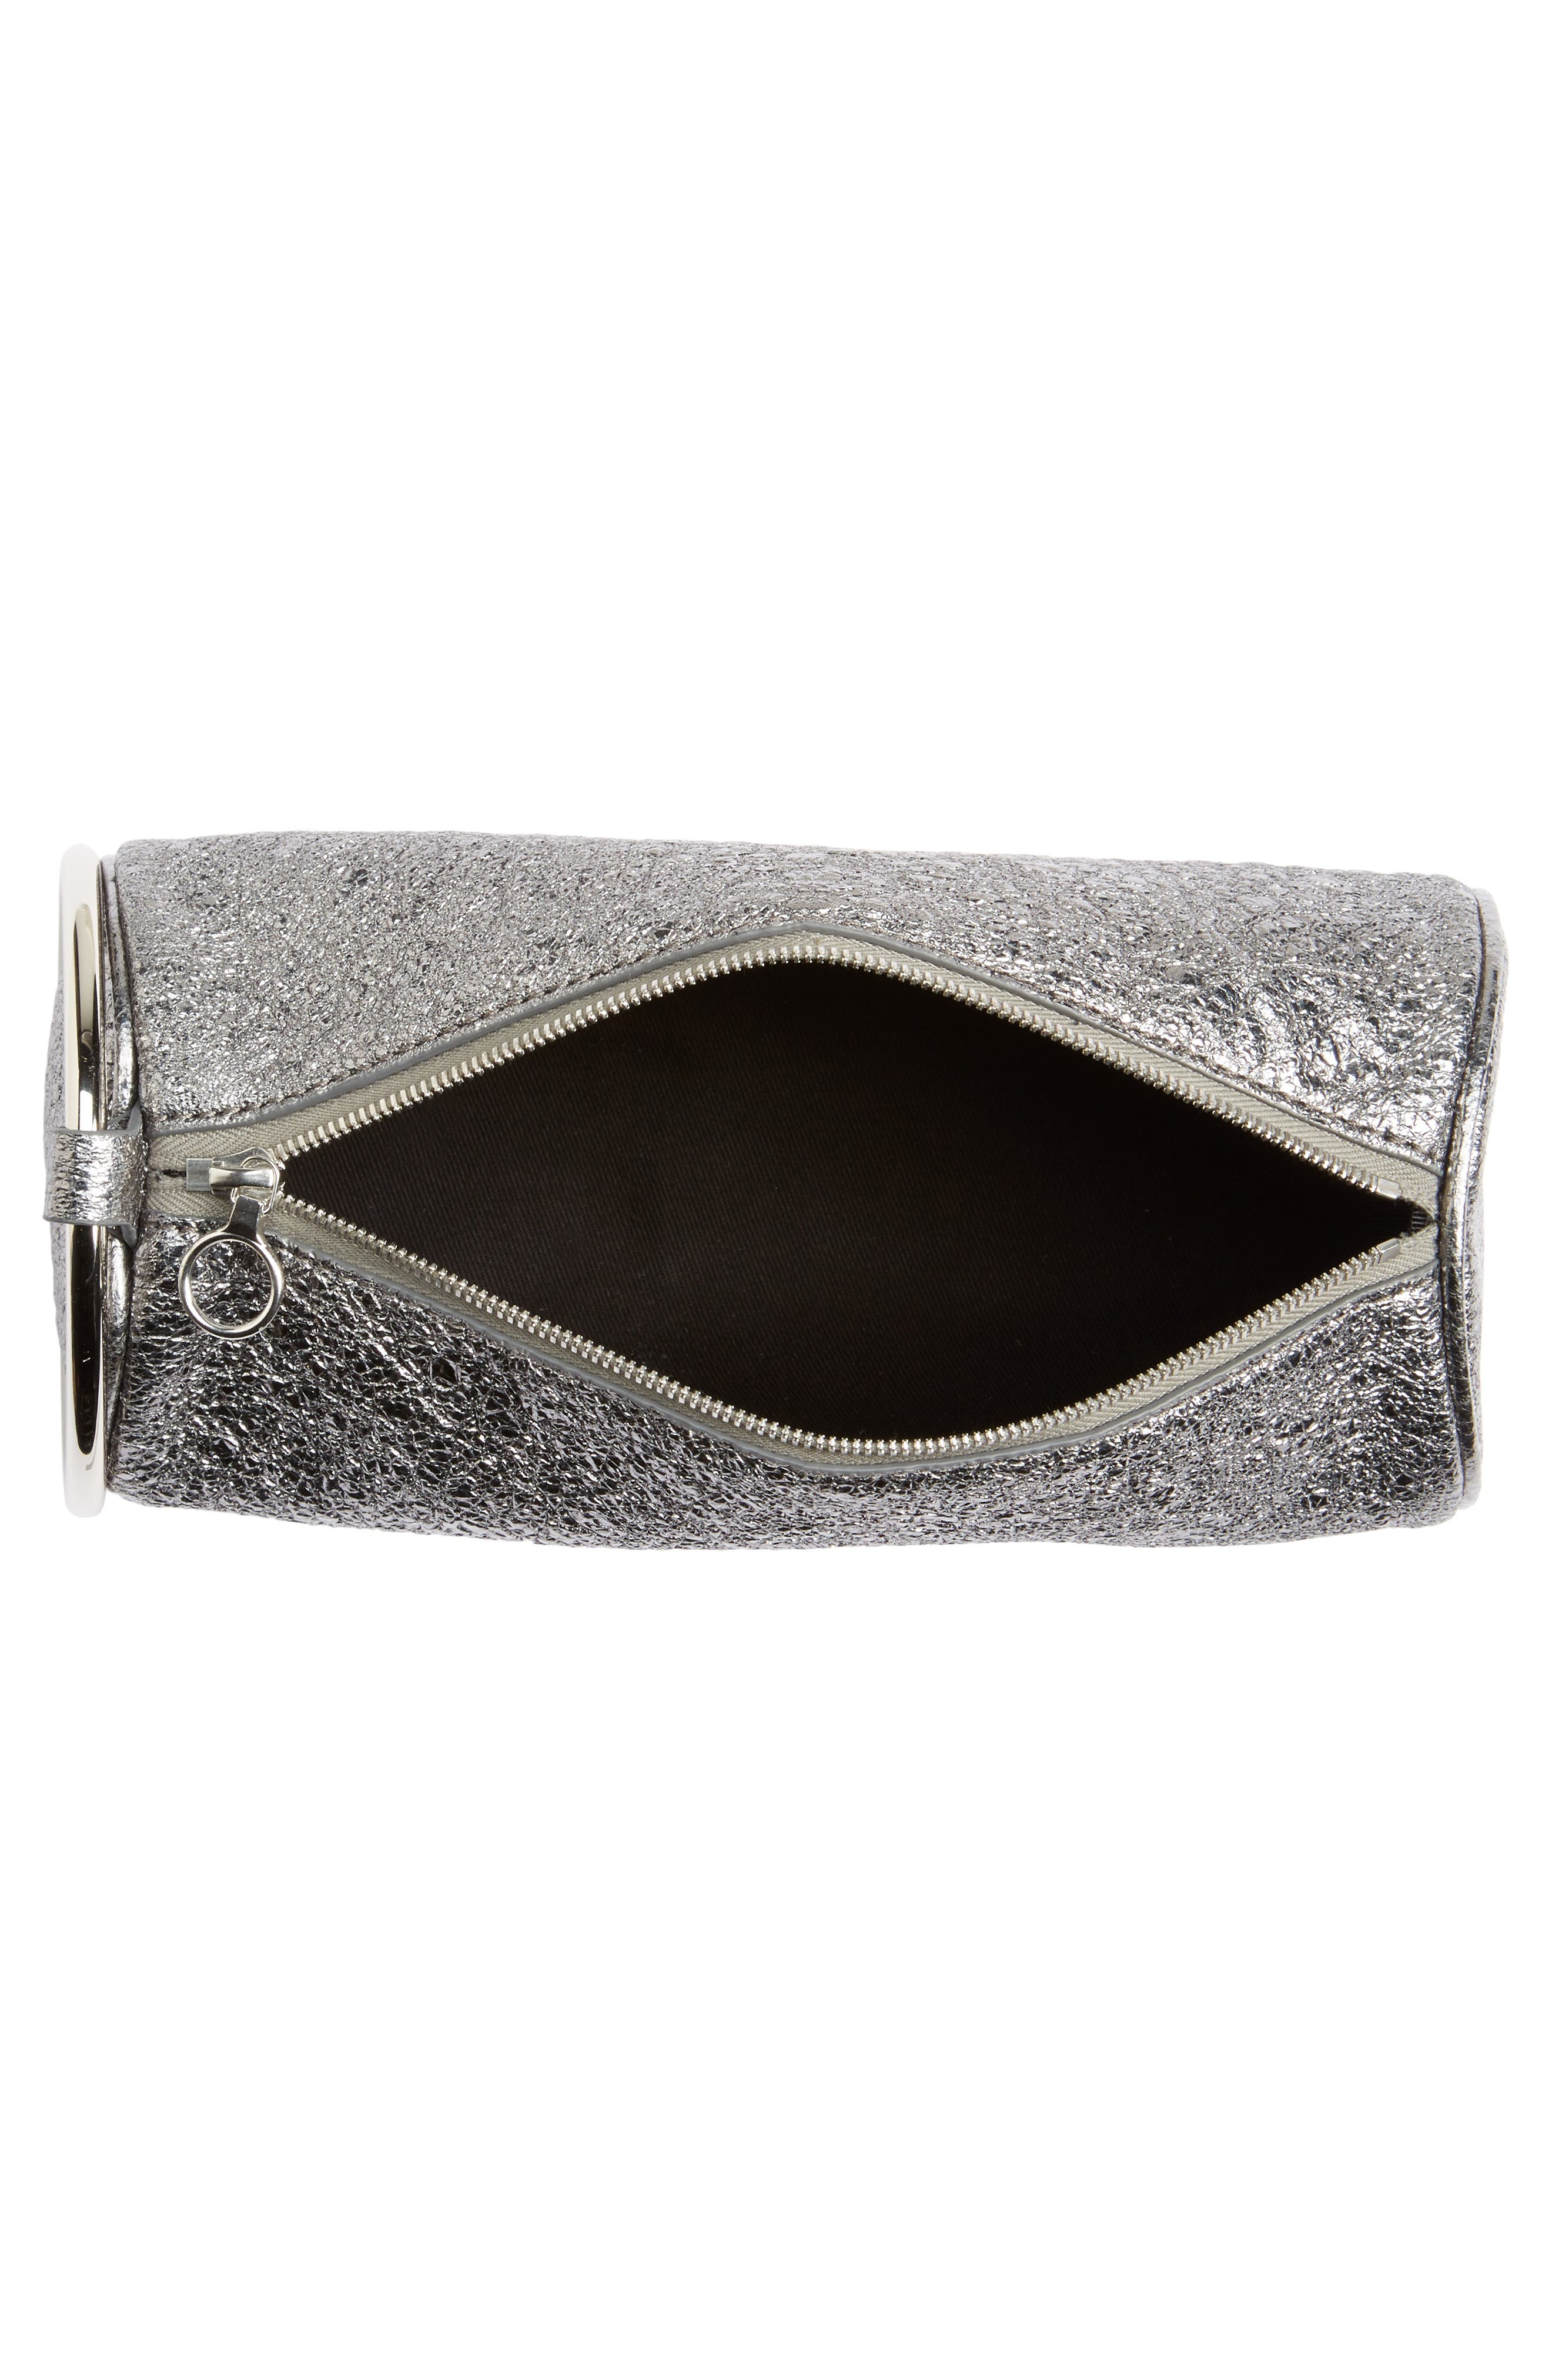 Crinkled Metallic Leather Duffel Wristlet Clutch,                             Alternate thumbnail 4, color,